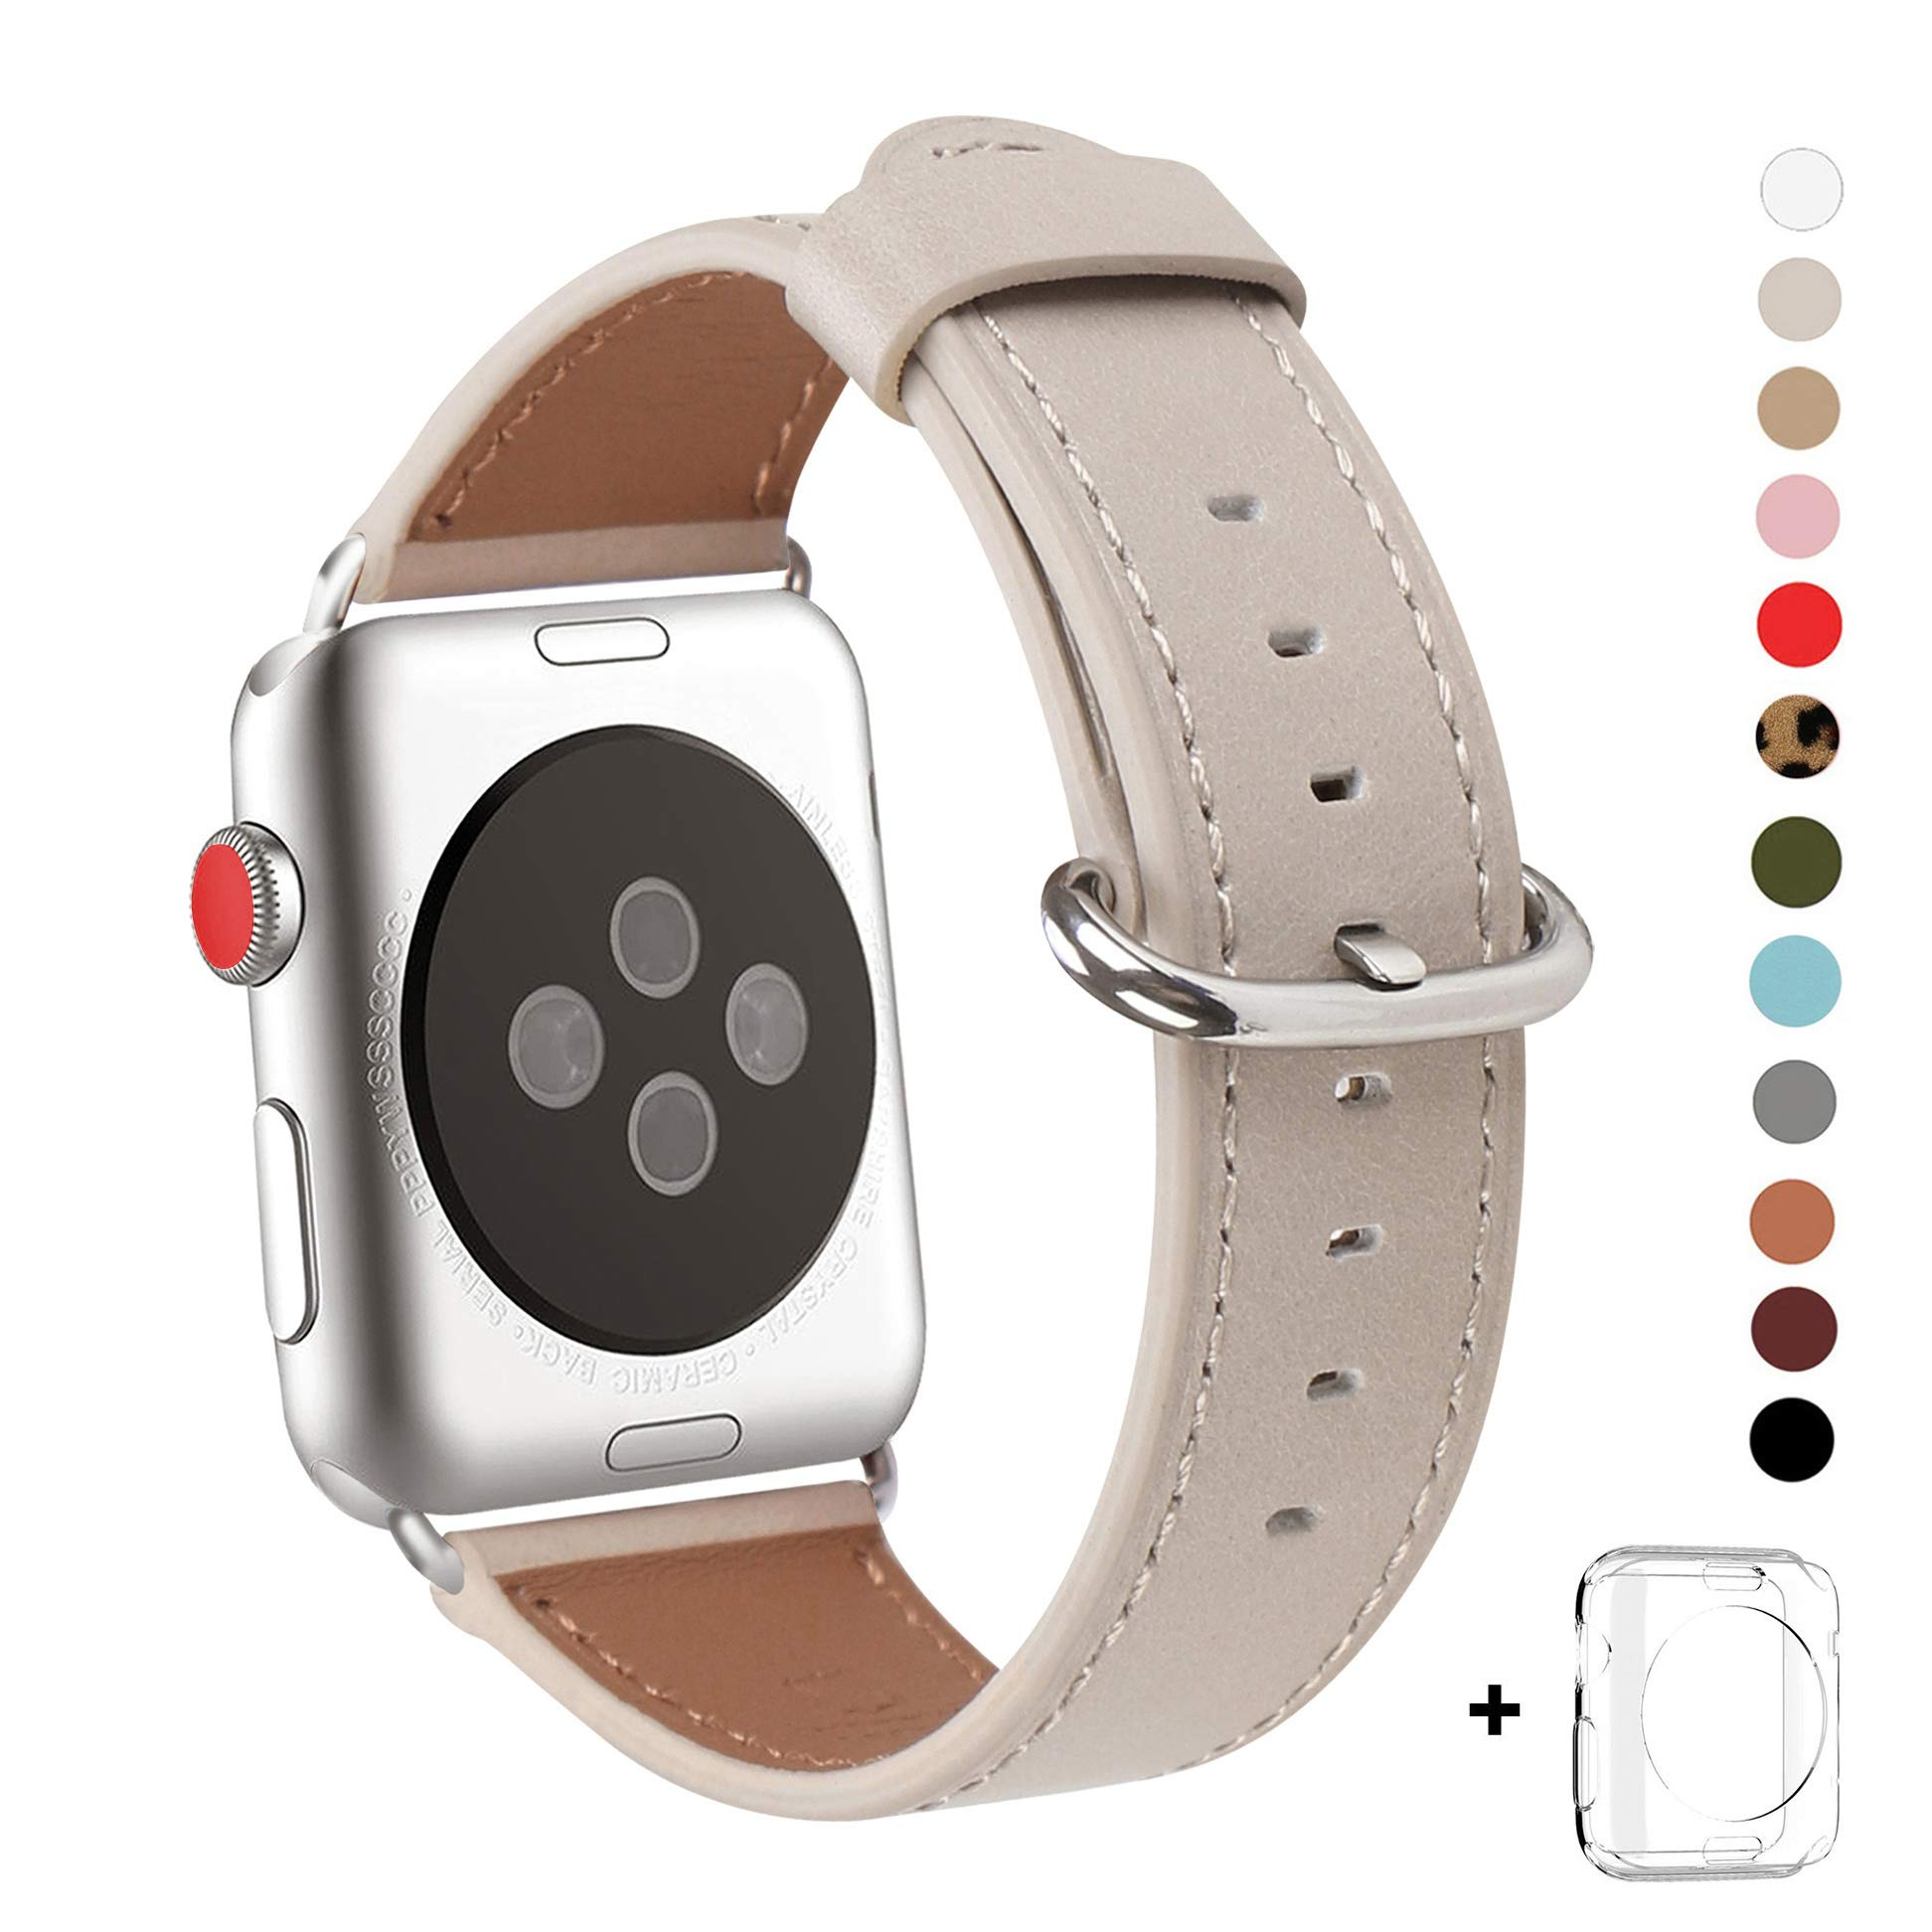 WFEAGL Compatible iWatch Band 38mm 42mm, Top Grain Leather Band Replacement Strap with Stainless Steel Clasp for iWatch Series 3,Series 2,Series 1,Sport, Edition(IvoryWhite Band)